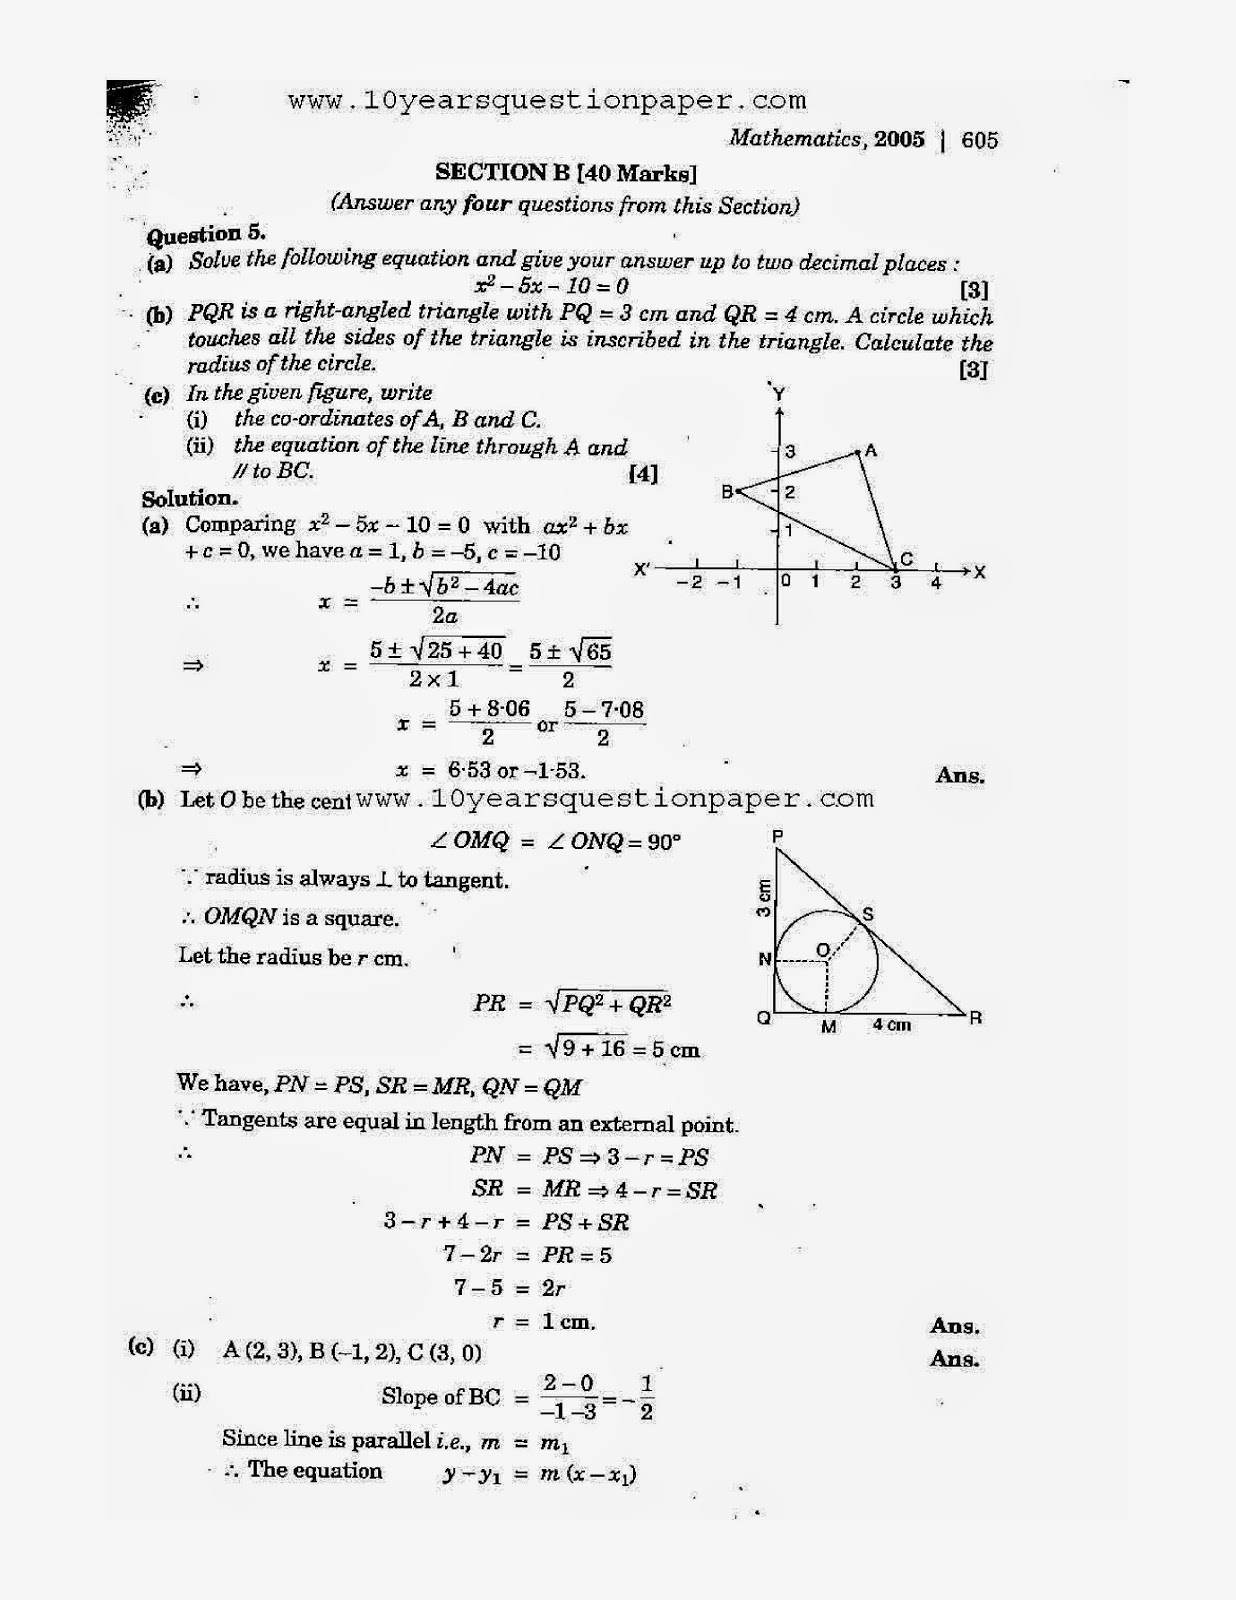 Icse class 10th mathematics solved question paper 2005